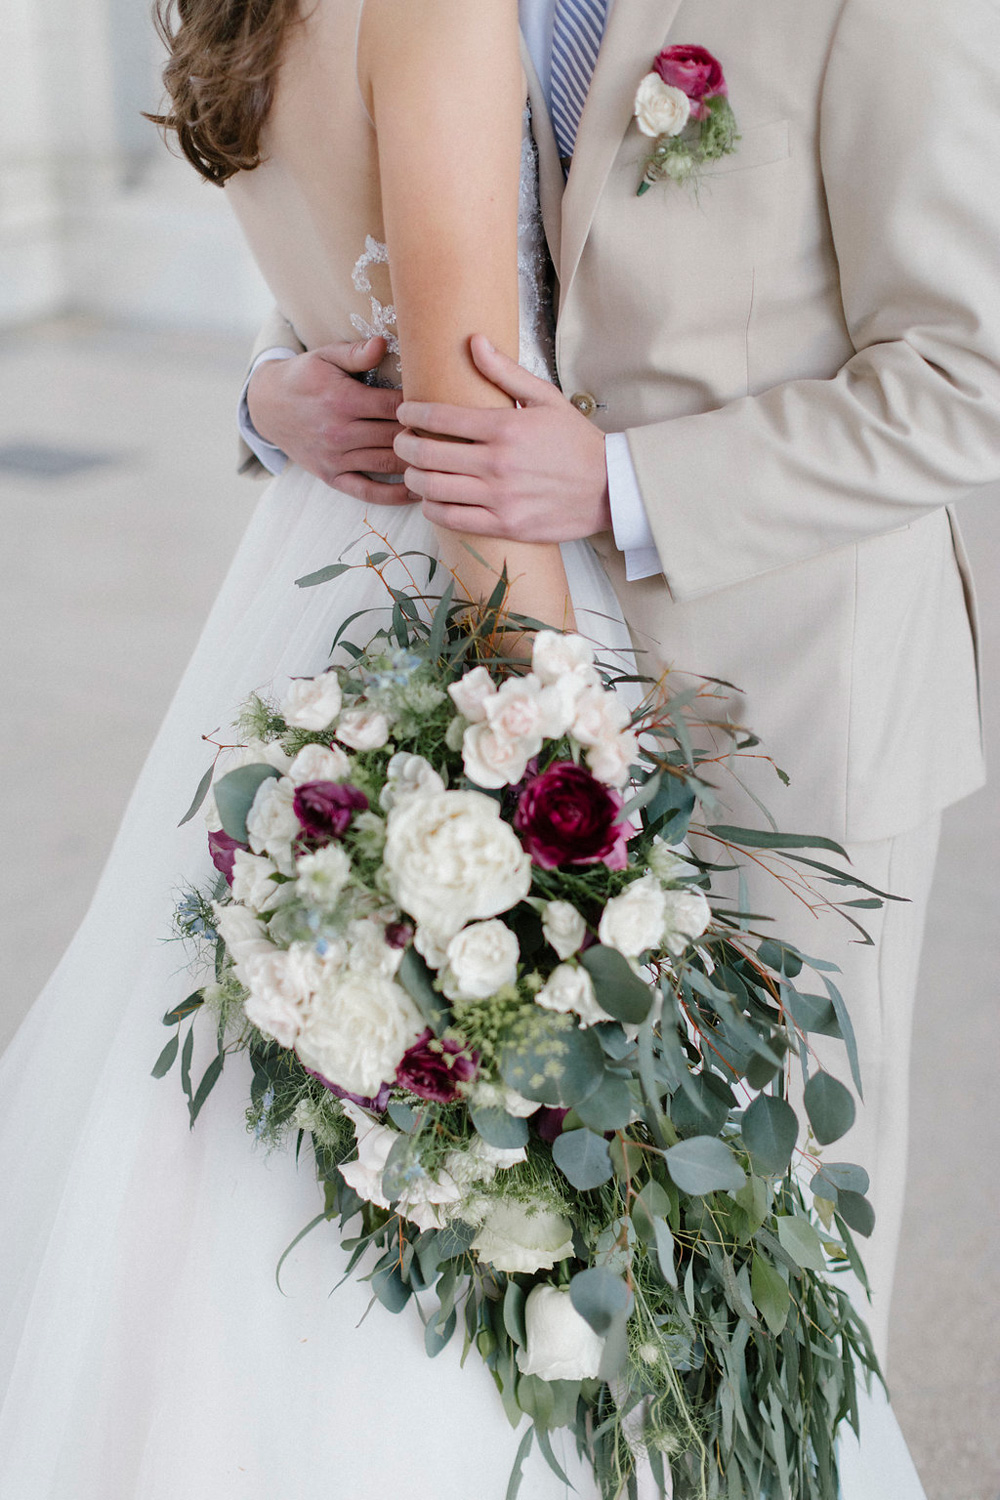 Bride & Groom, boutineer & large over-sized cascade bouquet - fresh flowers